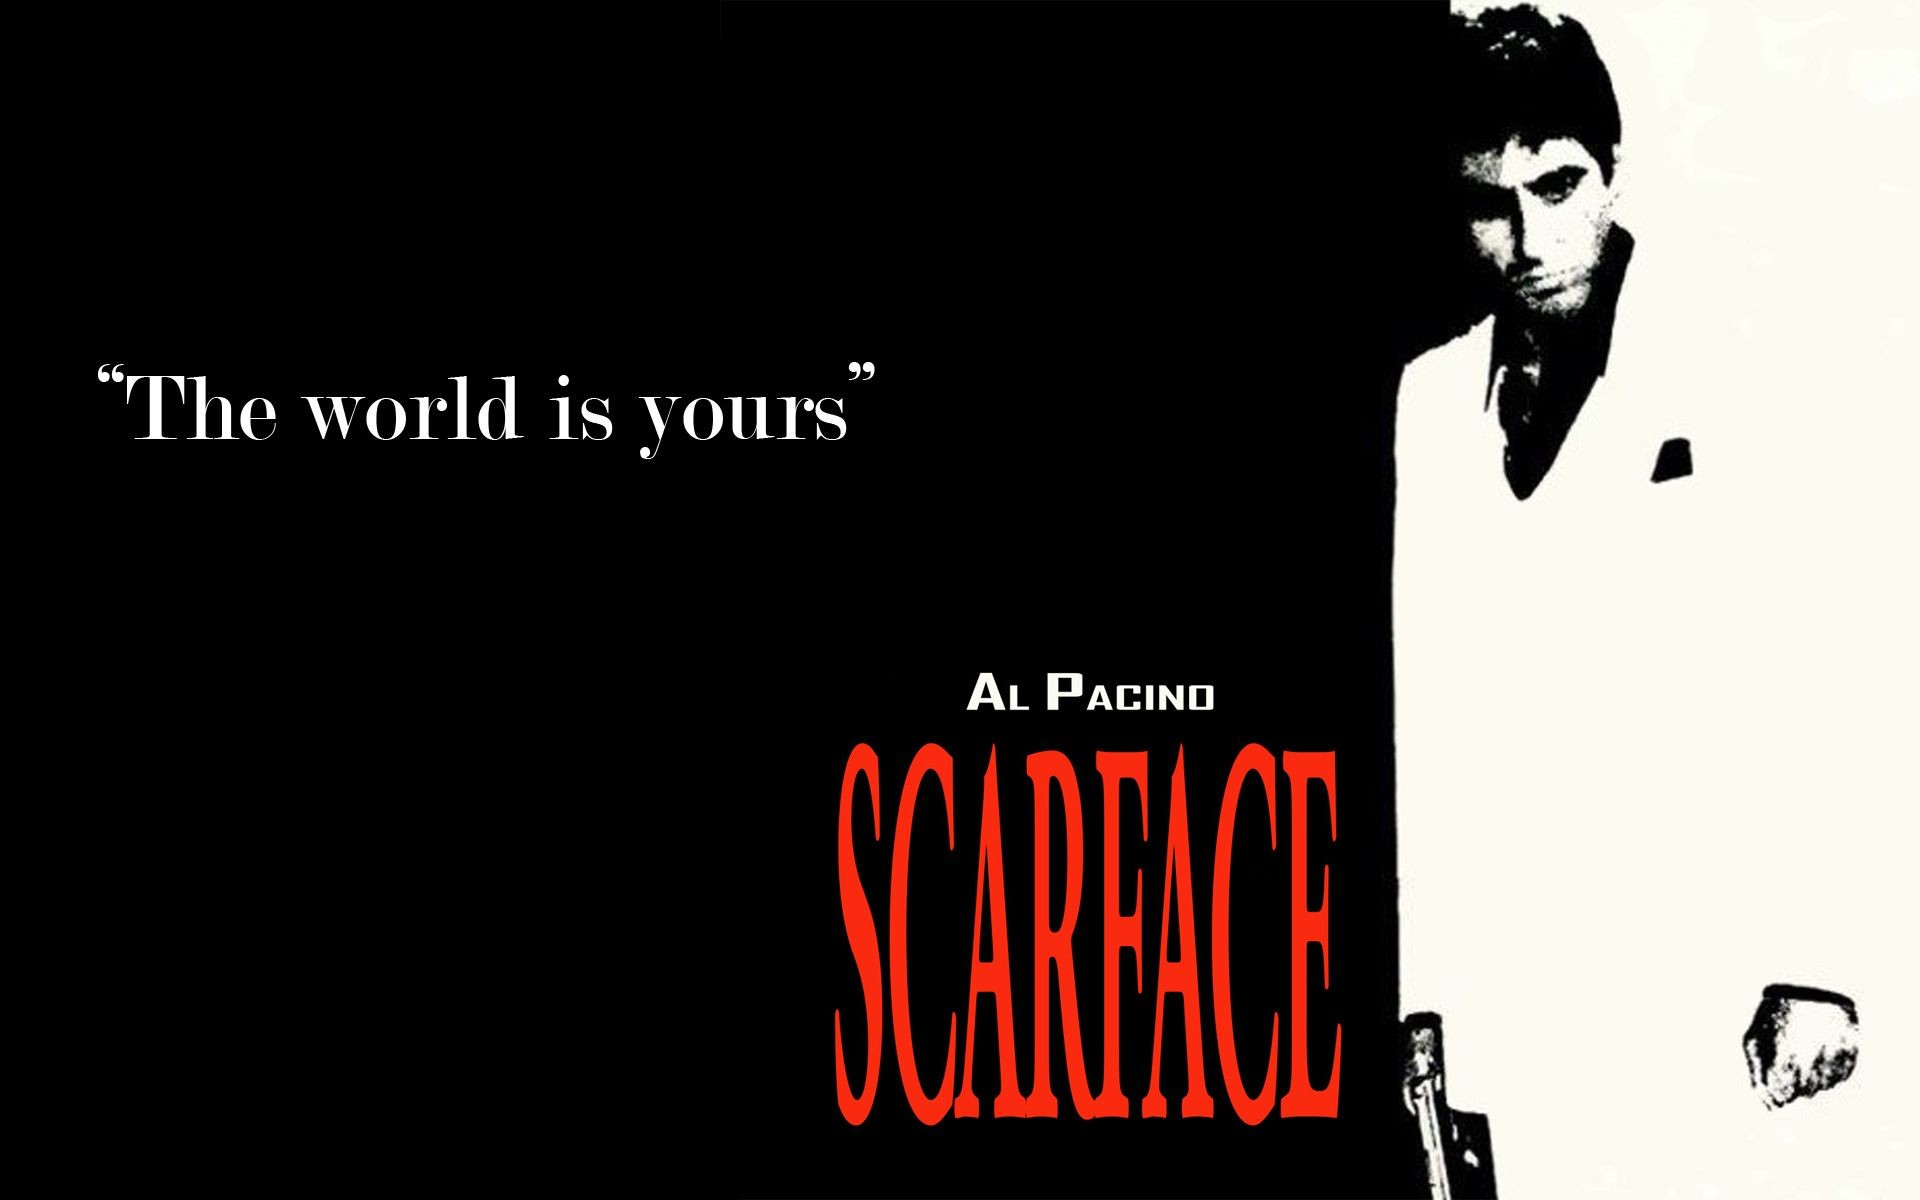 1920x1200 Scarface HD Wallpapers and Backgrounds